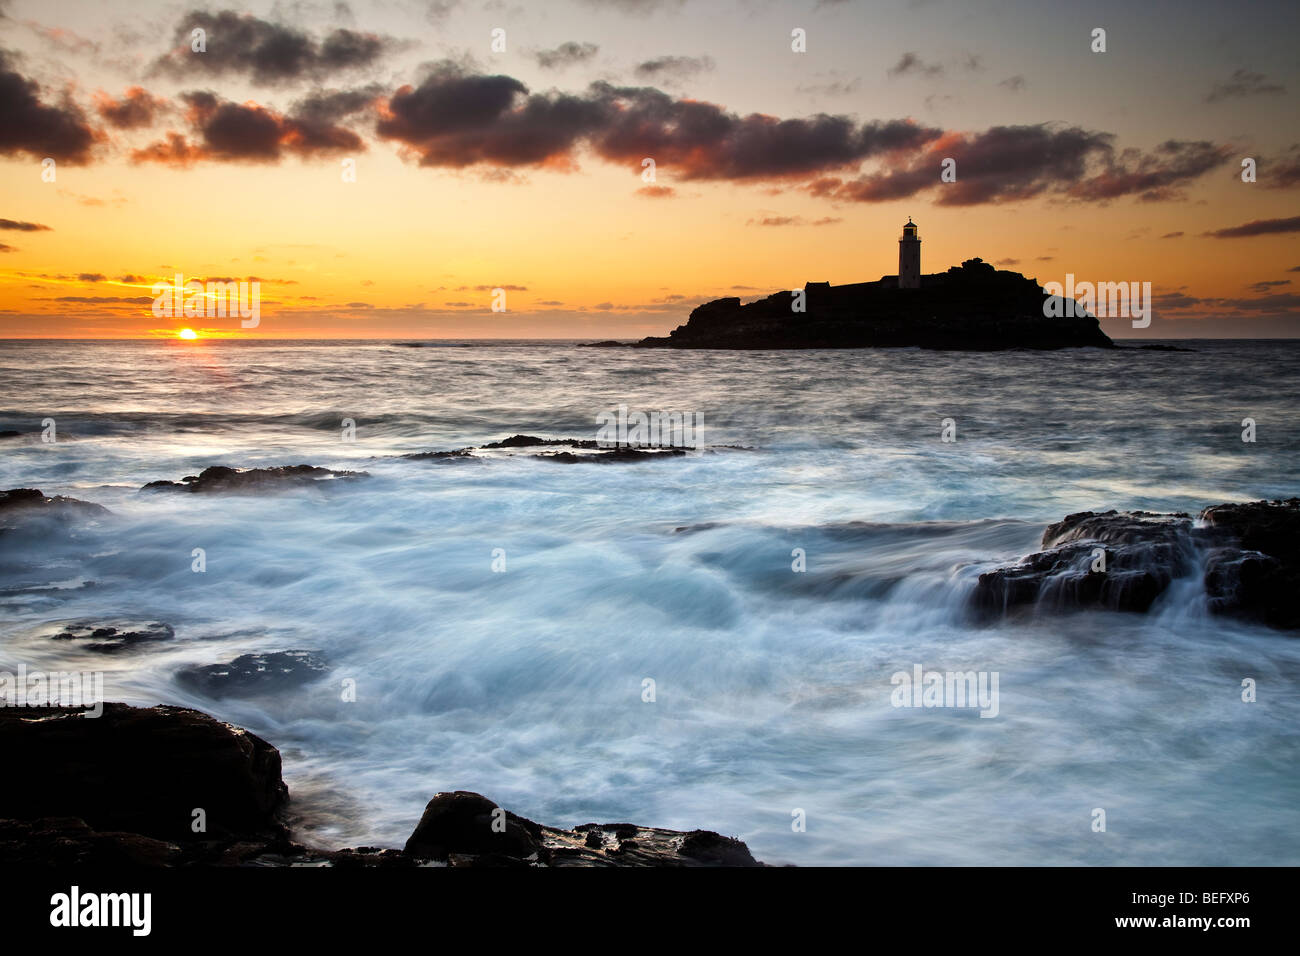 High Tide at Sunset, Godrevy Point and Lighthouse, St Ives Bay, North Cornwall - Stock Image